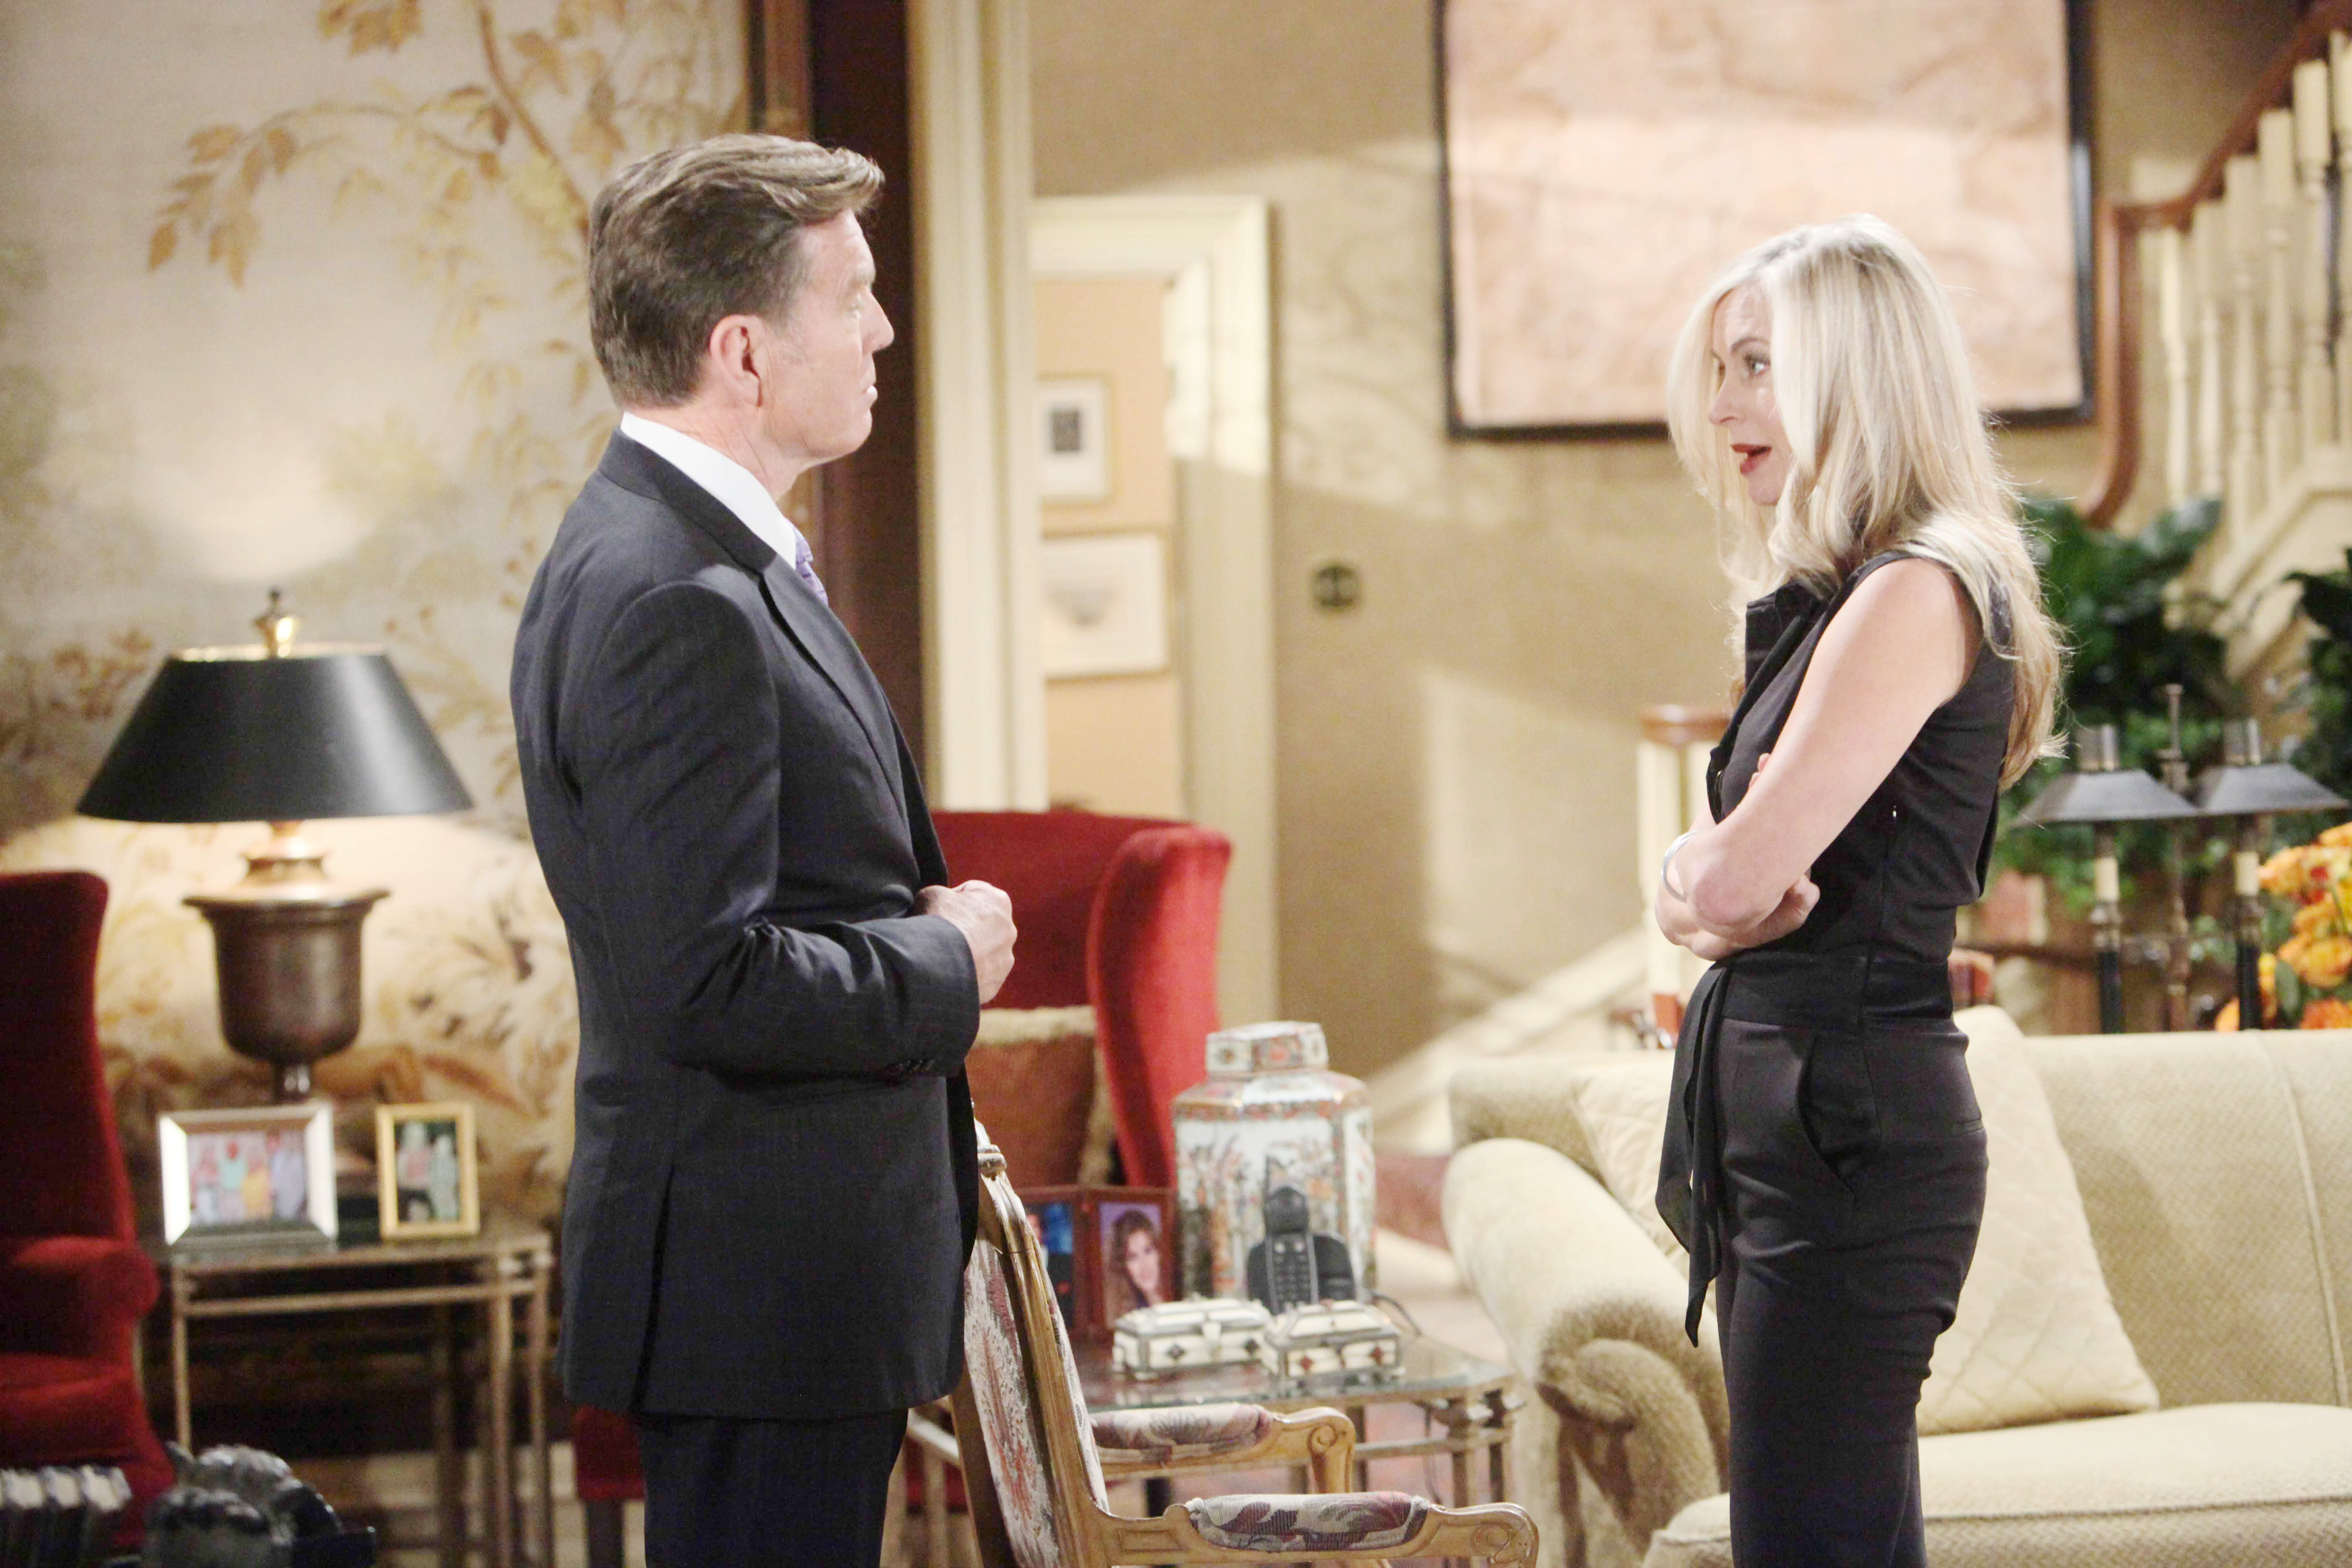 Ashley works to repair her family on The Young and the Restless